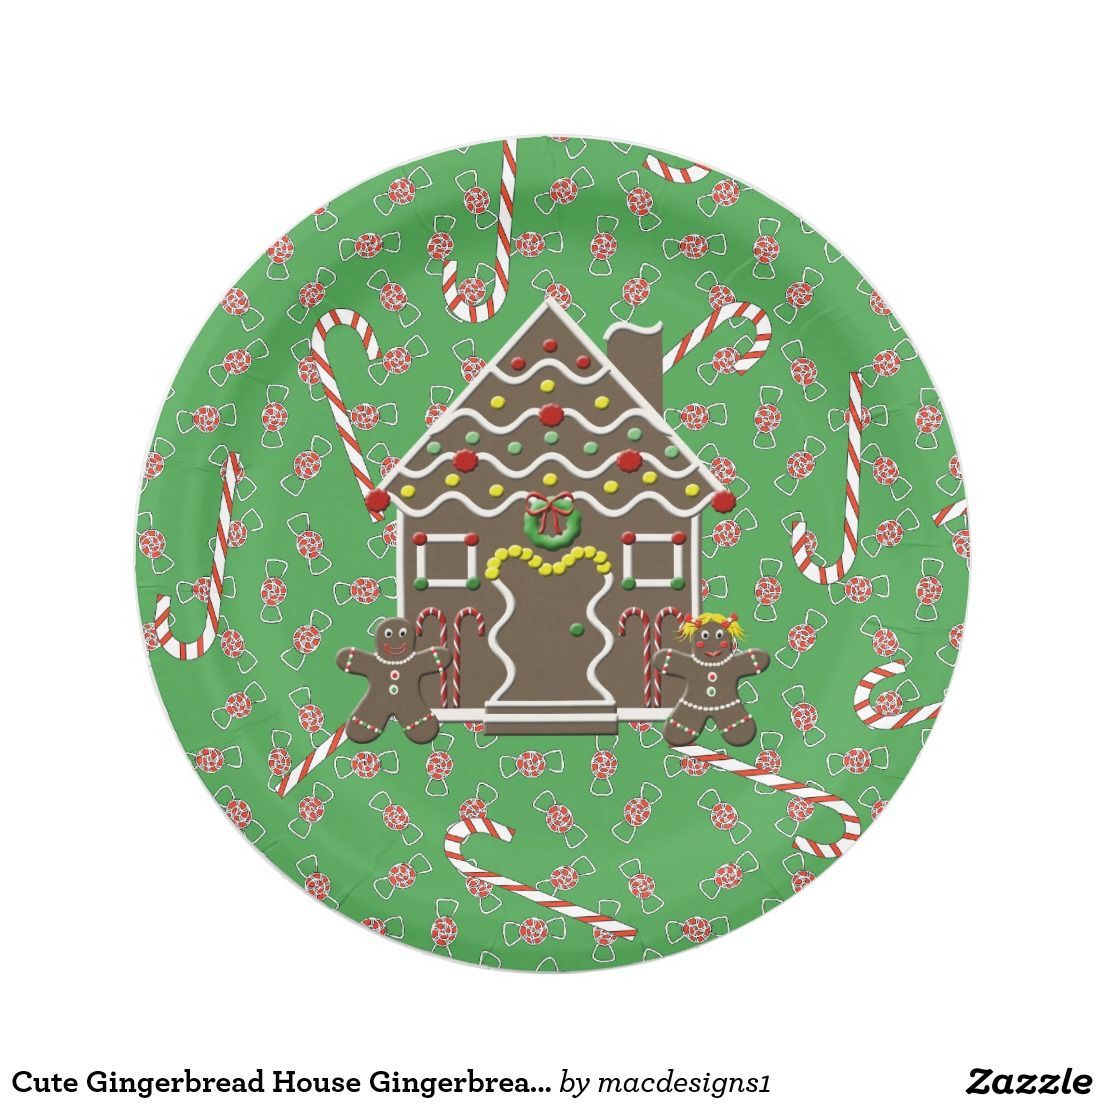 Cute Gingerbread House Gingerbread Couple Paper Plate  sc 1 st  Pinterest & Cute Gingerbread House Gingerbread Couple Paper Plate | Christmas ...